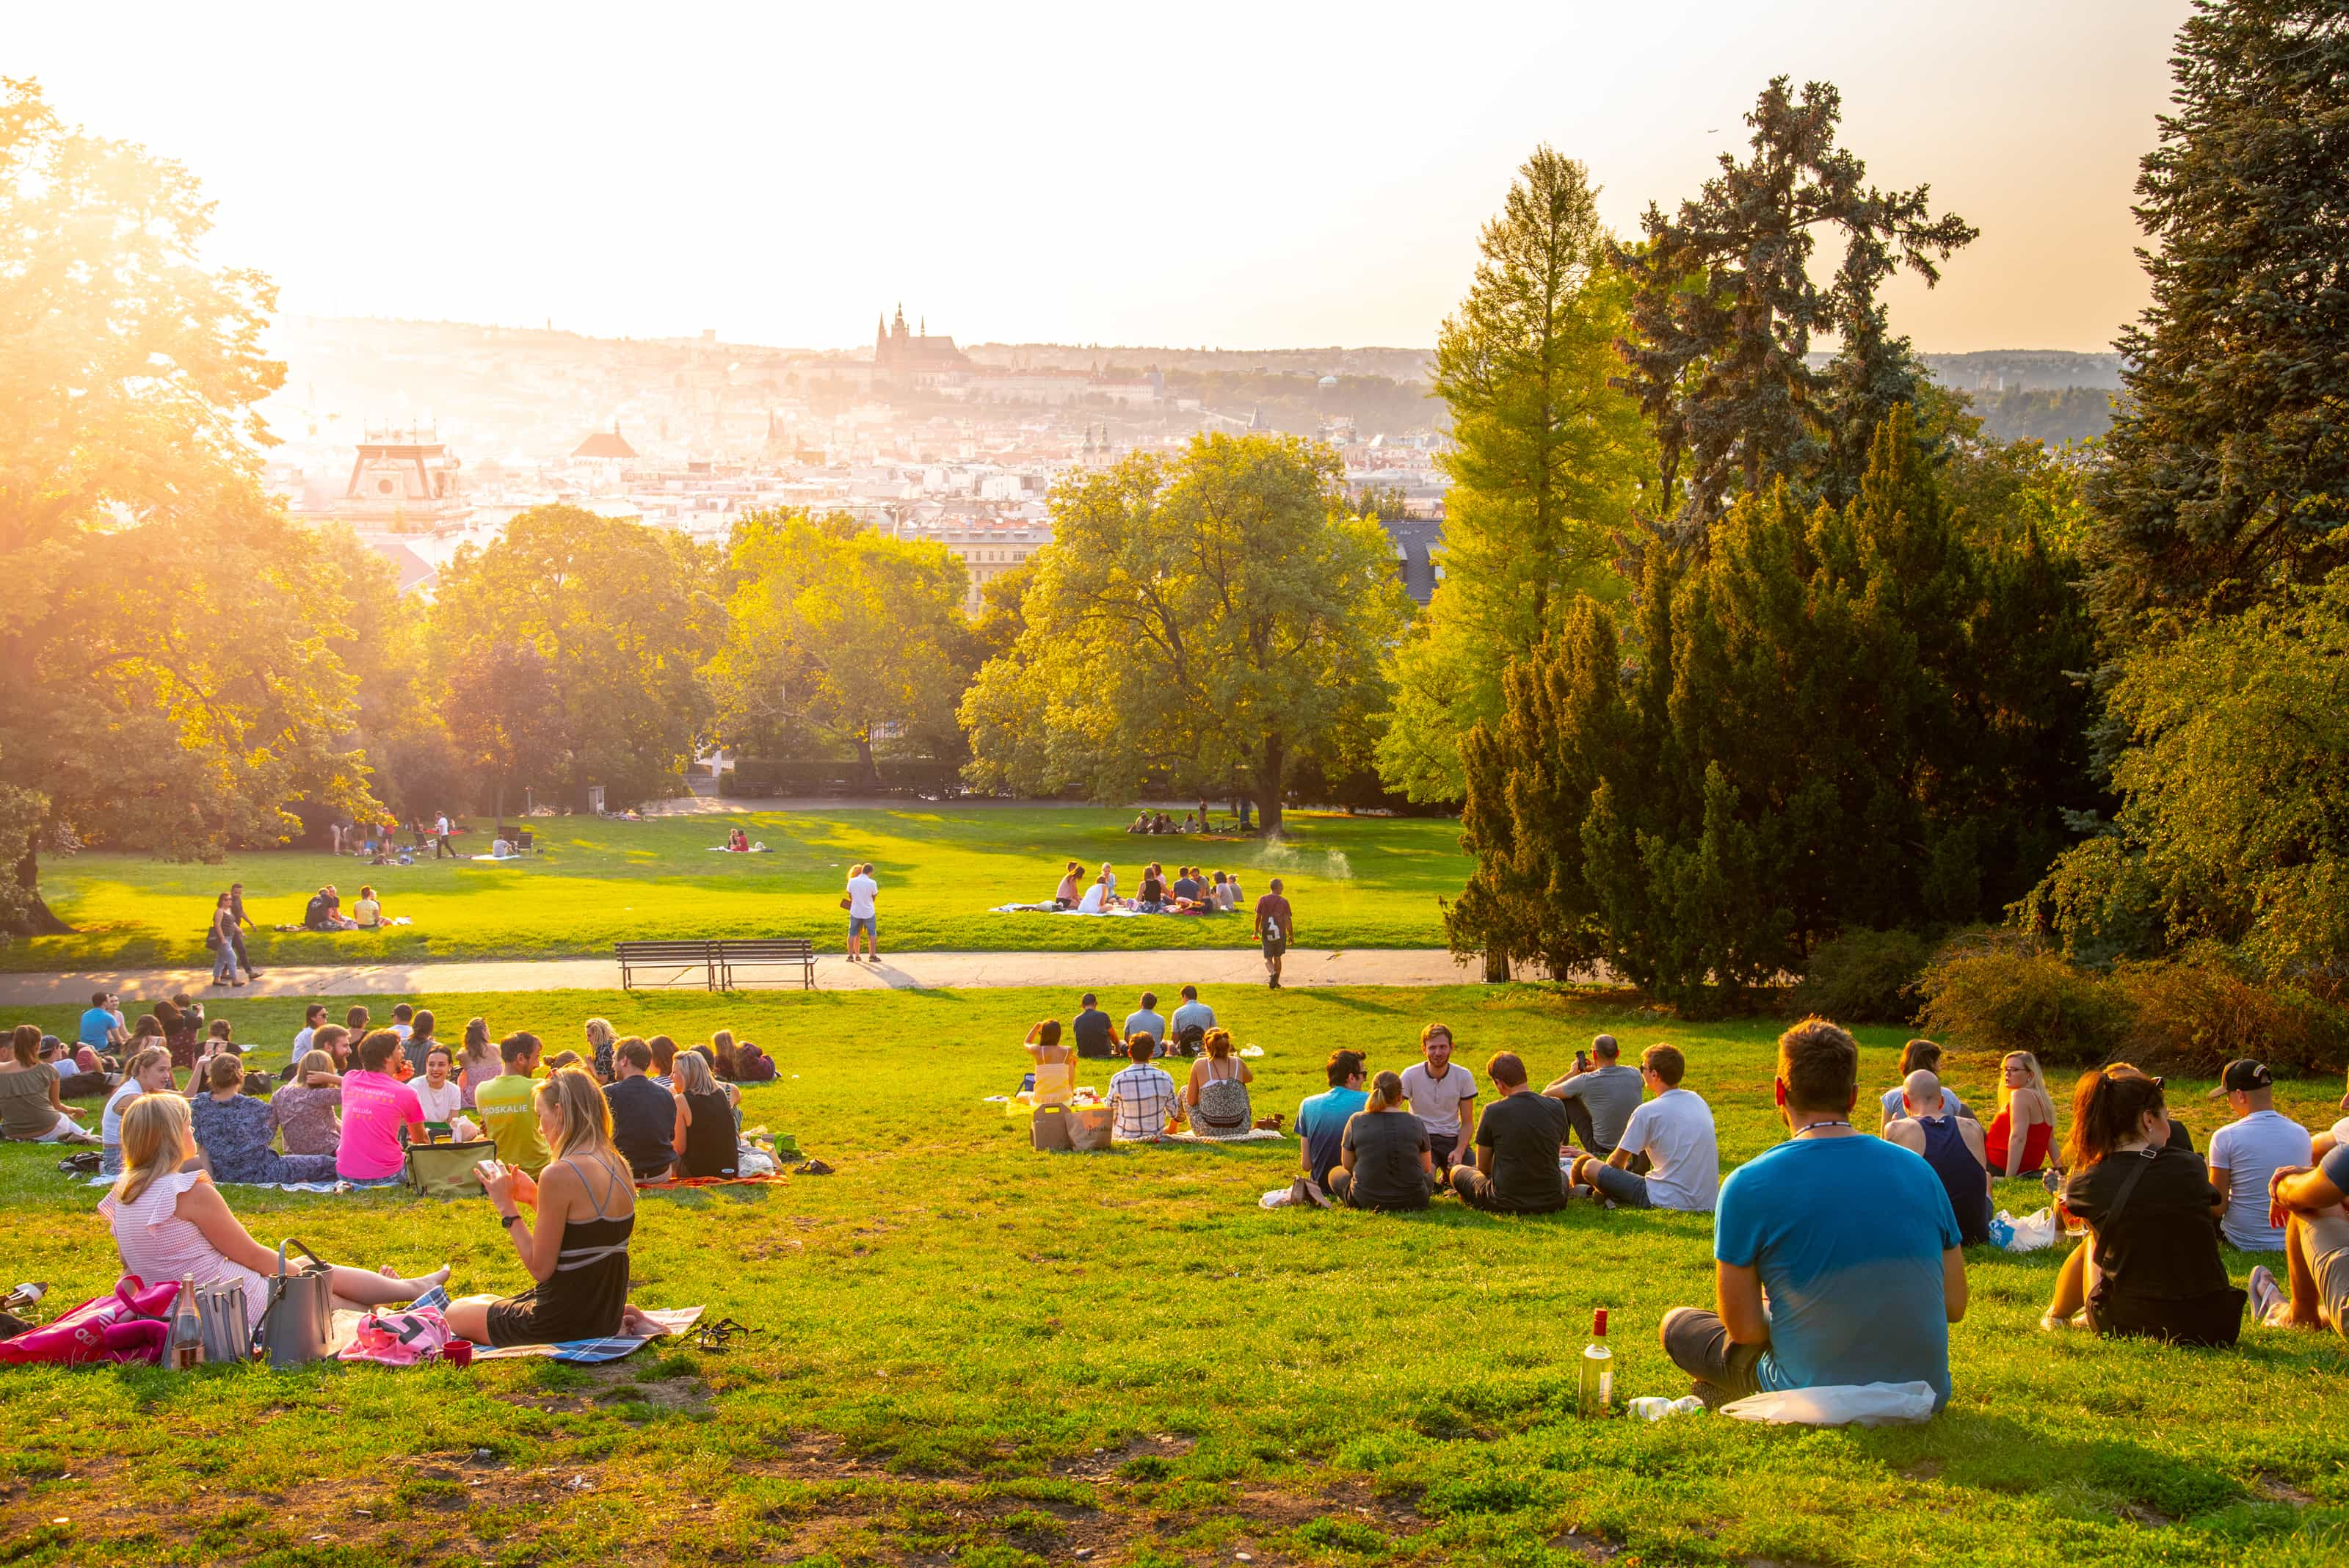 2018 Summer in Prague Was the Hottest in 244 Years